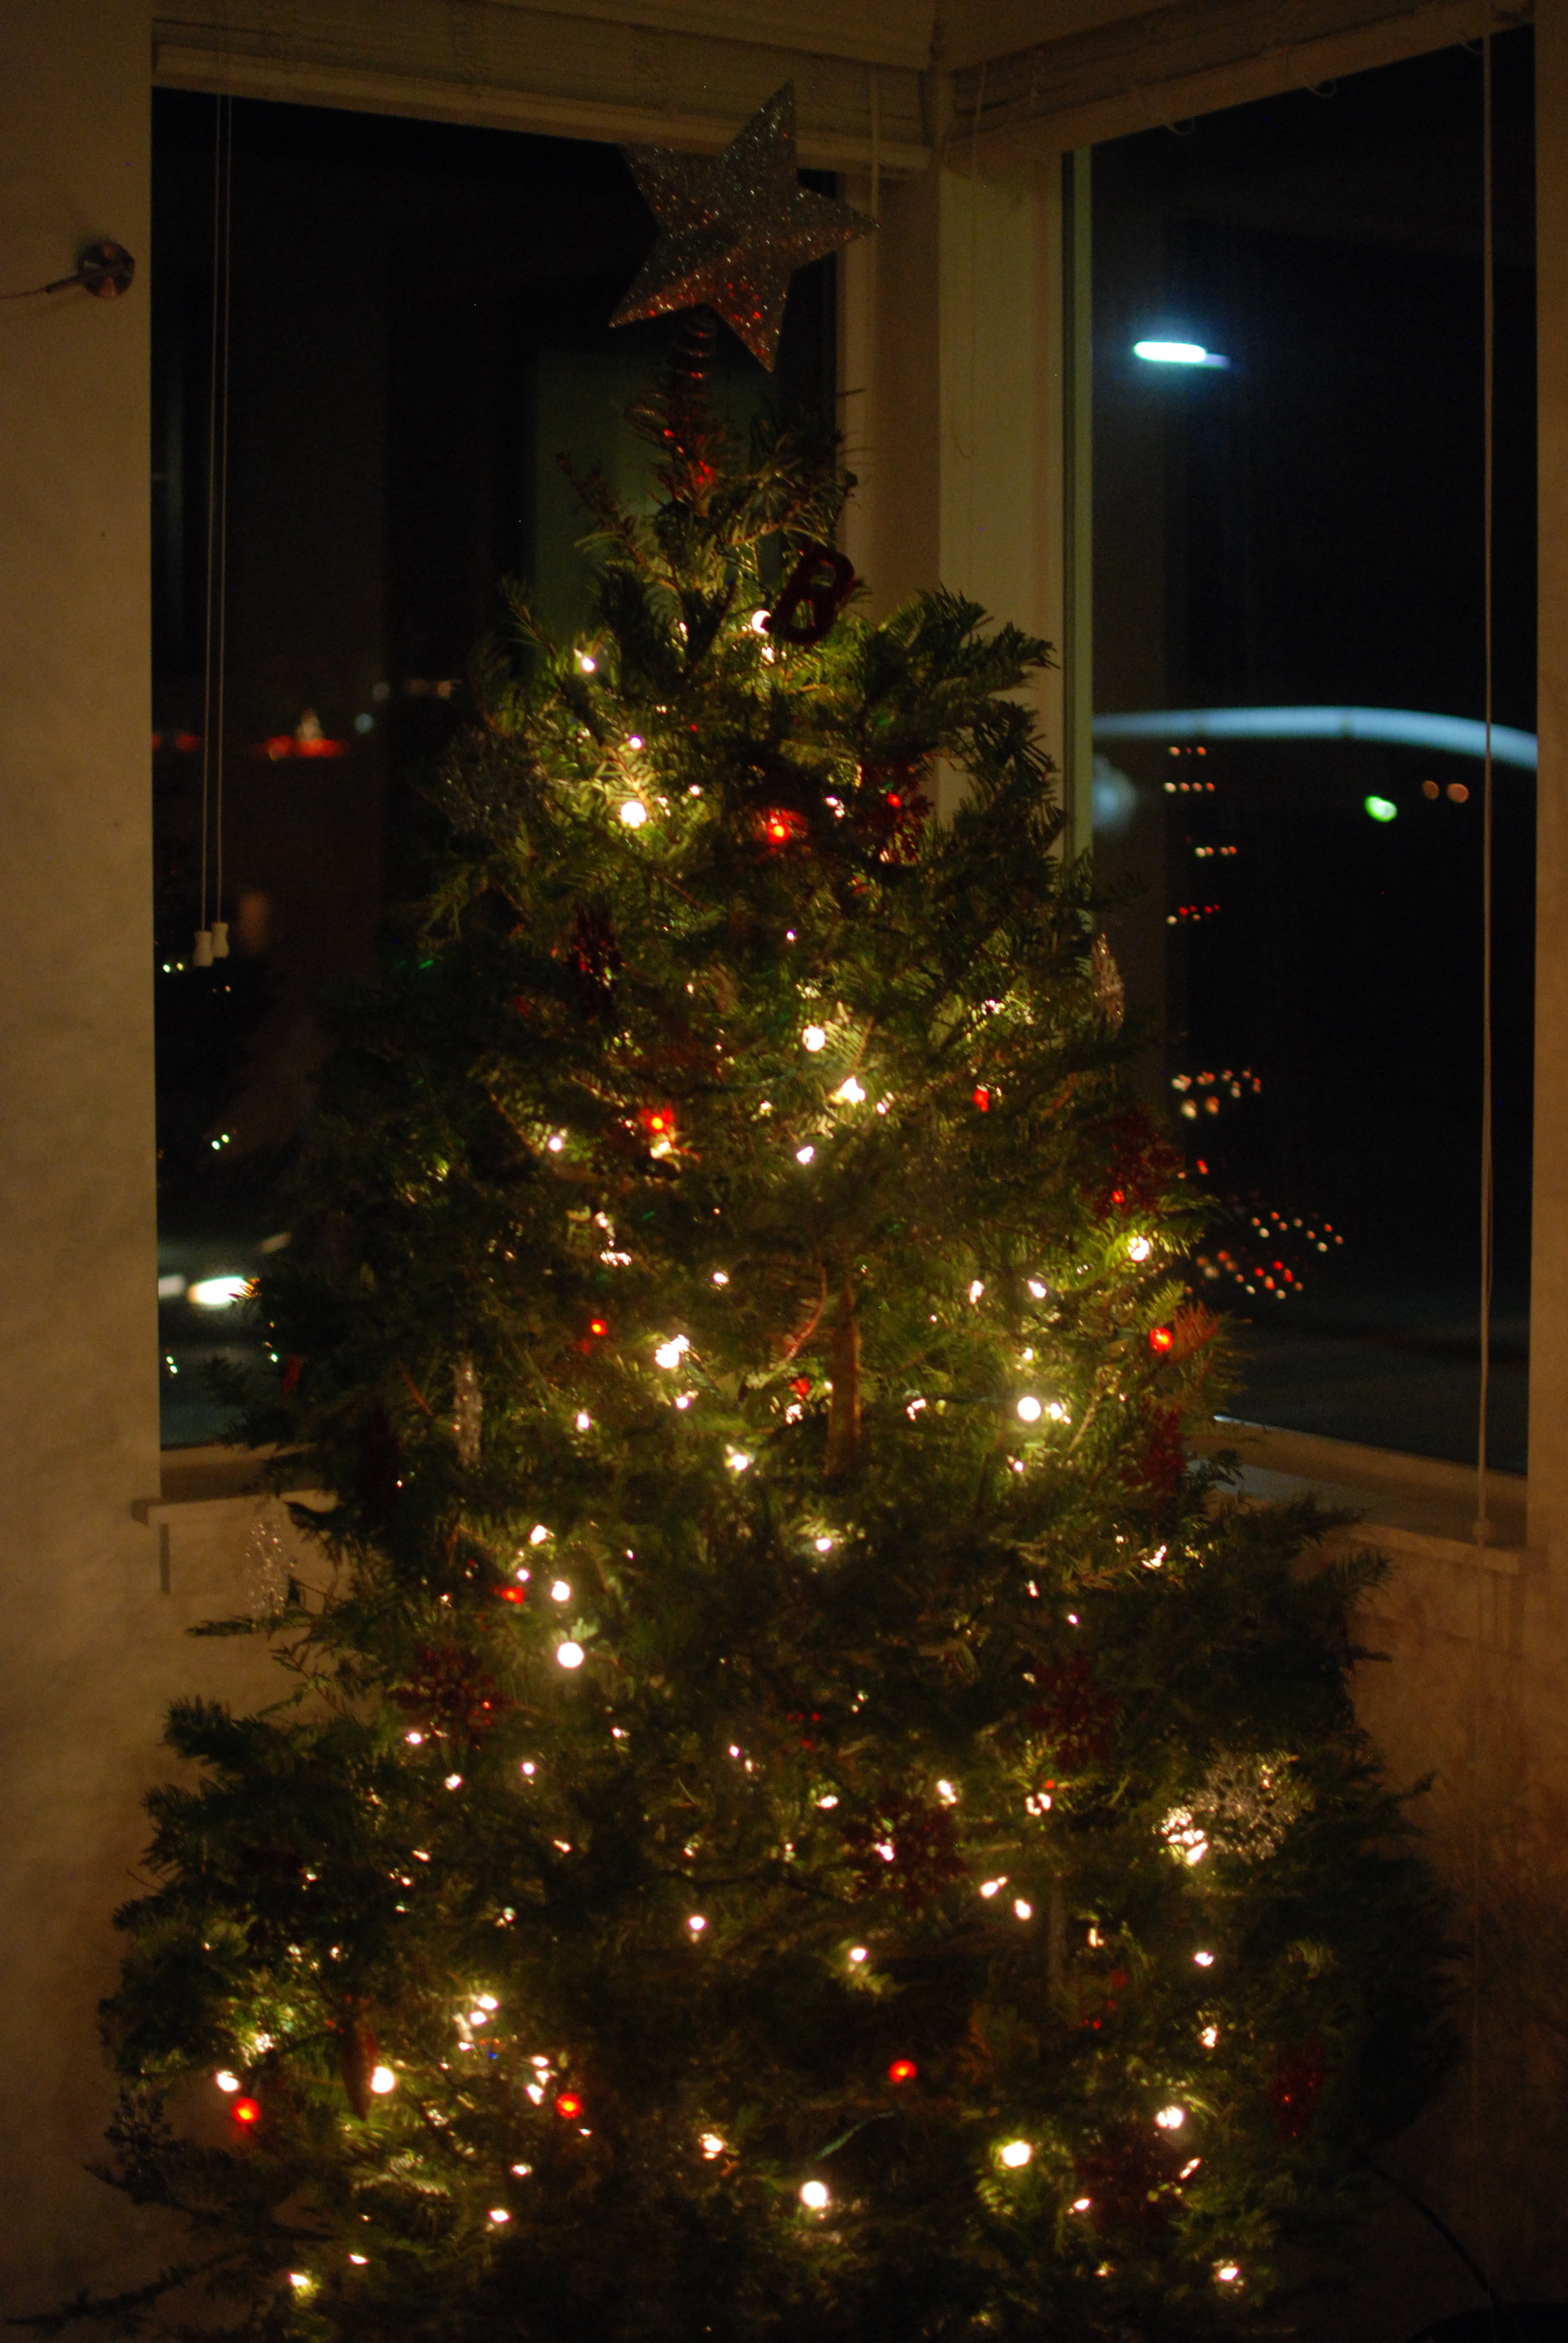 Oh Christmas Tree, Oh Christmas Tree - from the past. 0047